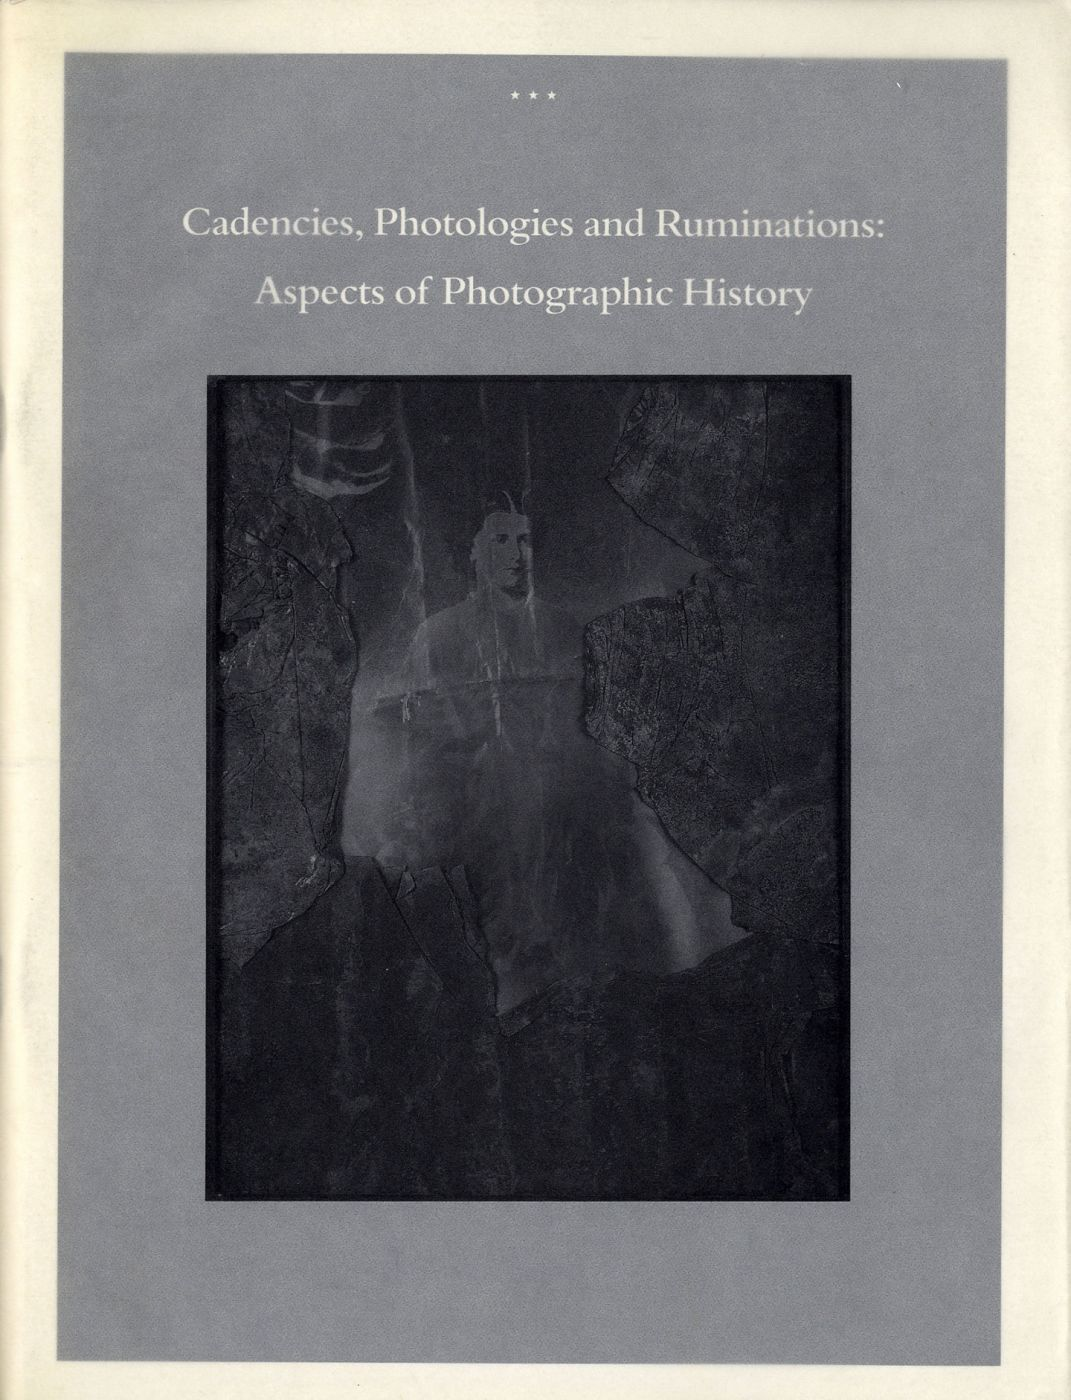 Cadencies, Photologies and Ruminations: Aspects of Photographic History (San Francisco Camerawork Quarterly Volume 16. No. 2 & 3)